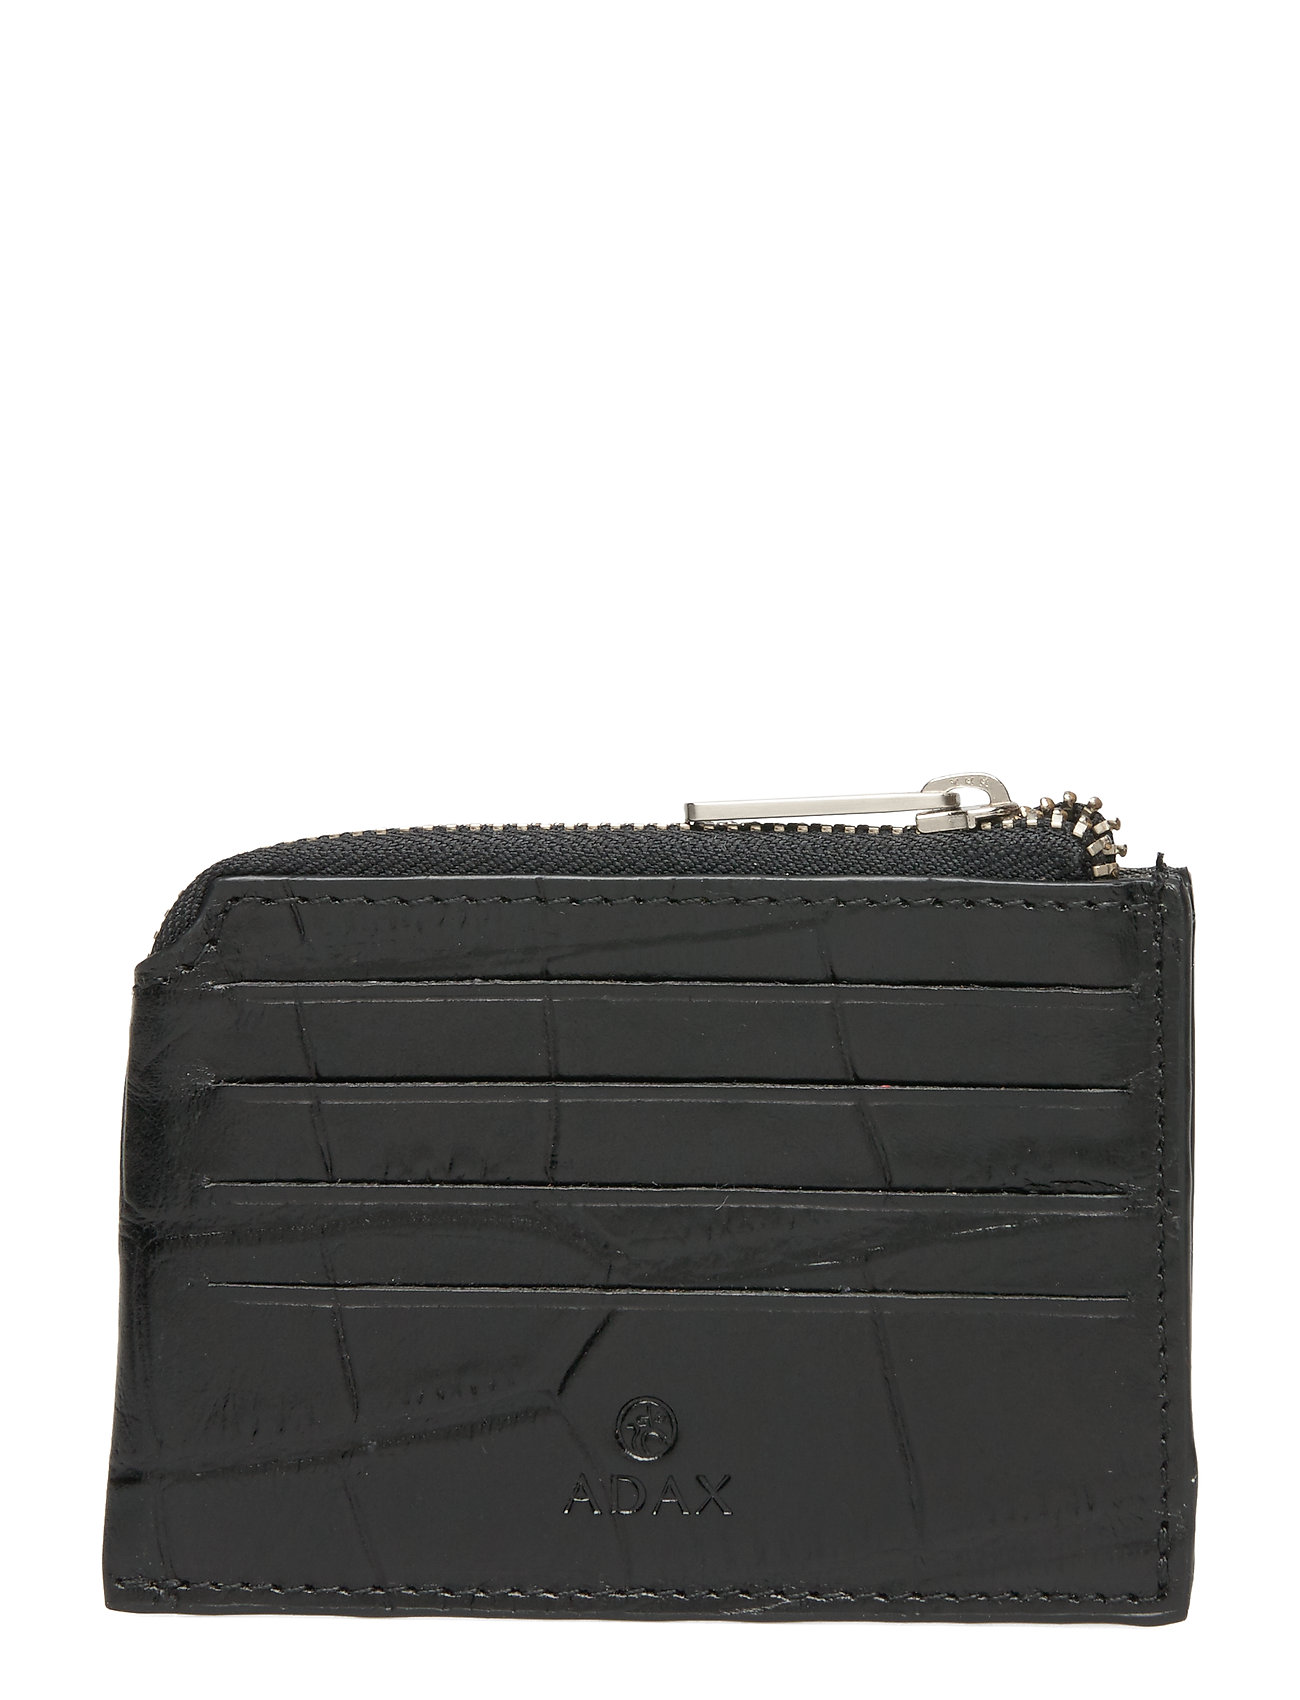 Image of Teramo Credit Card Holder Susy Bags Card Holders & Wallets Card Holder Sort Adax (3224265197)